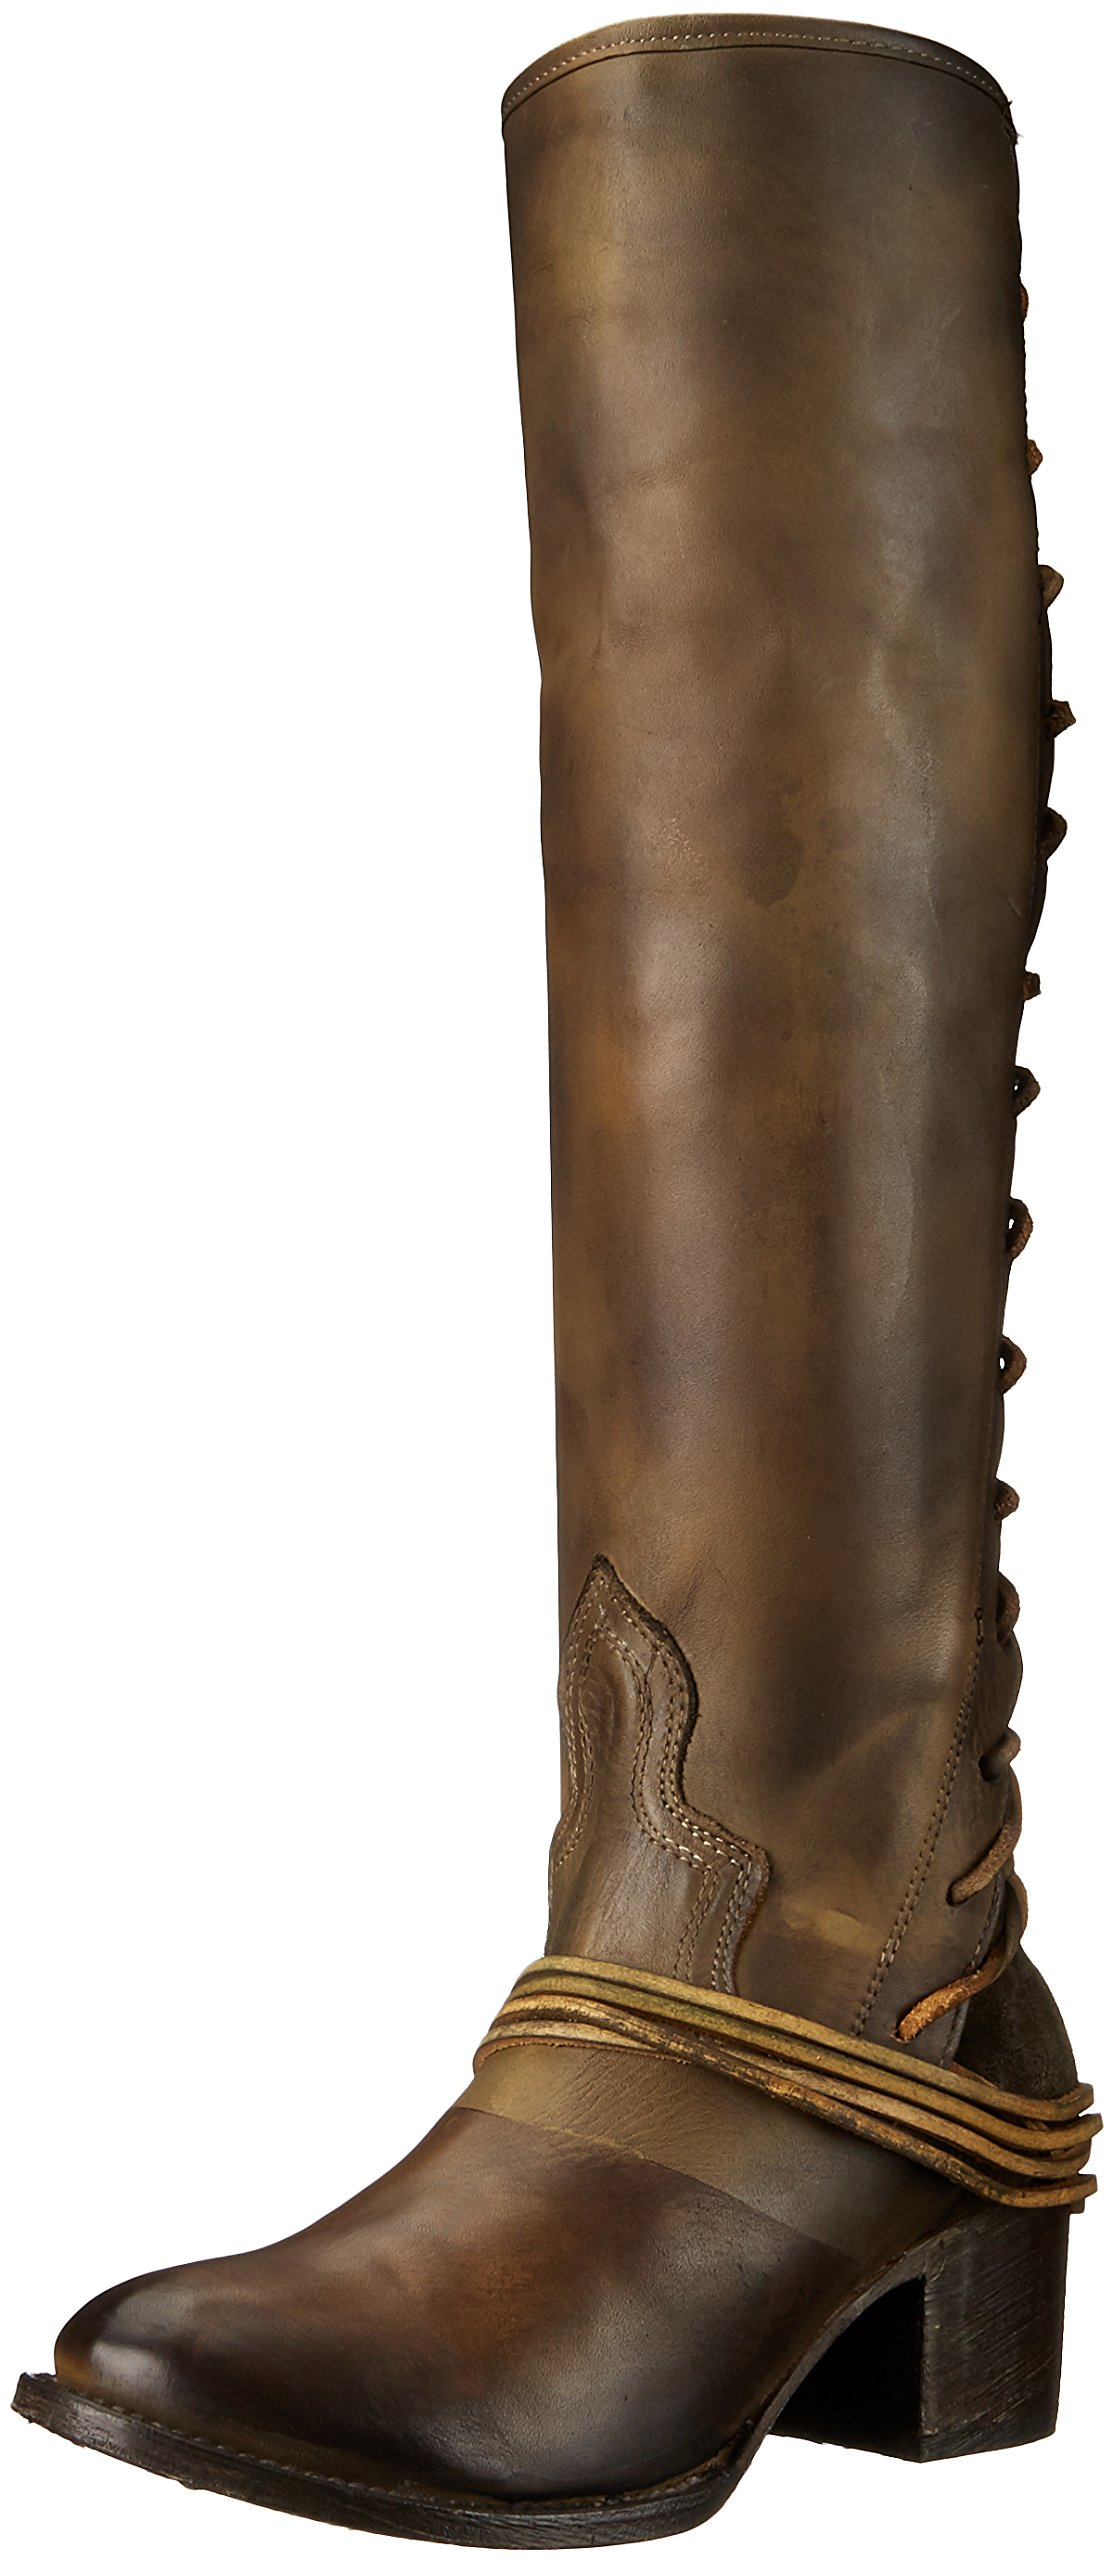 Freebird Women's Coal Riding Boot, Olive Leather, 7 M US by Freebird by Steven